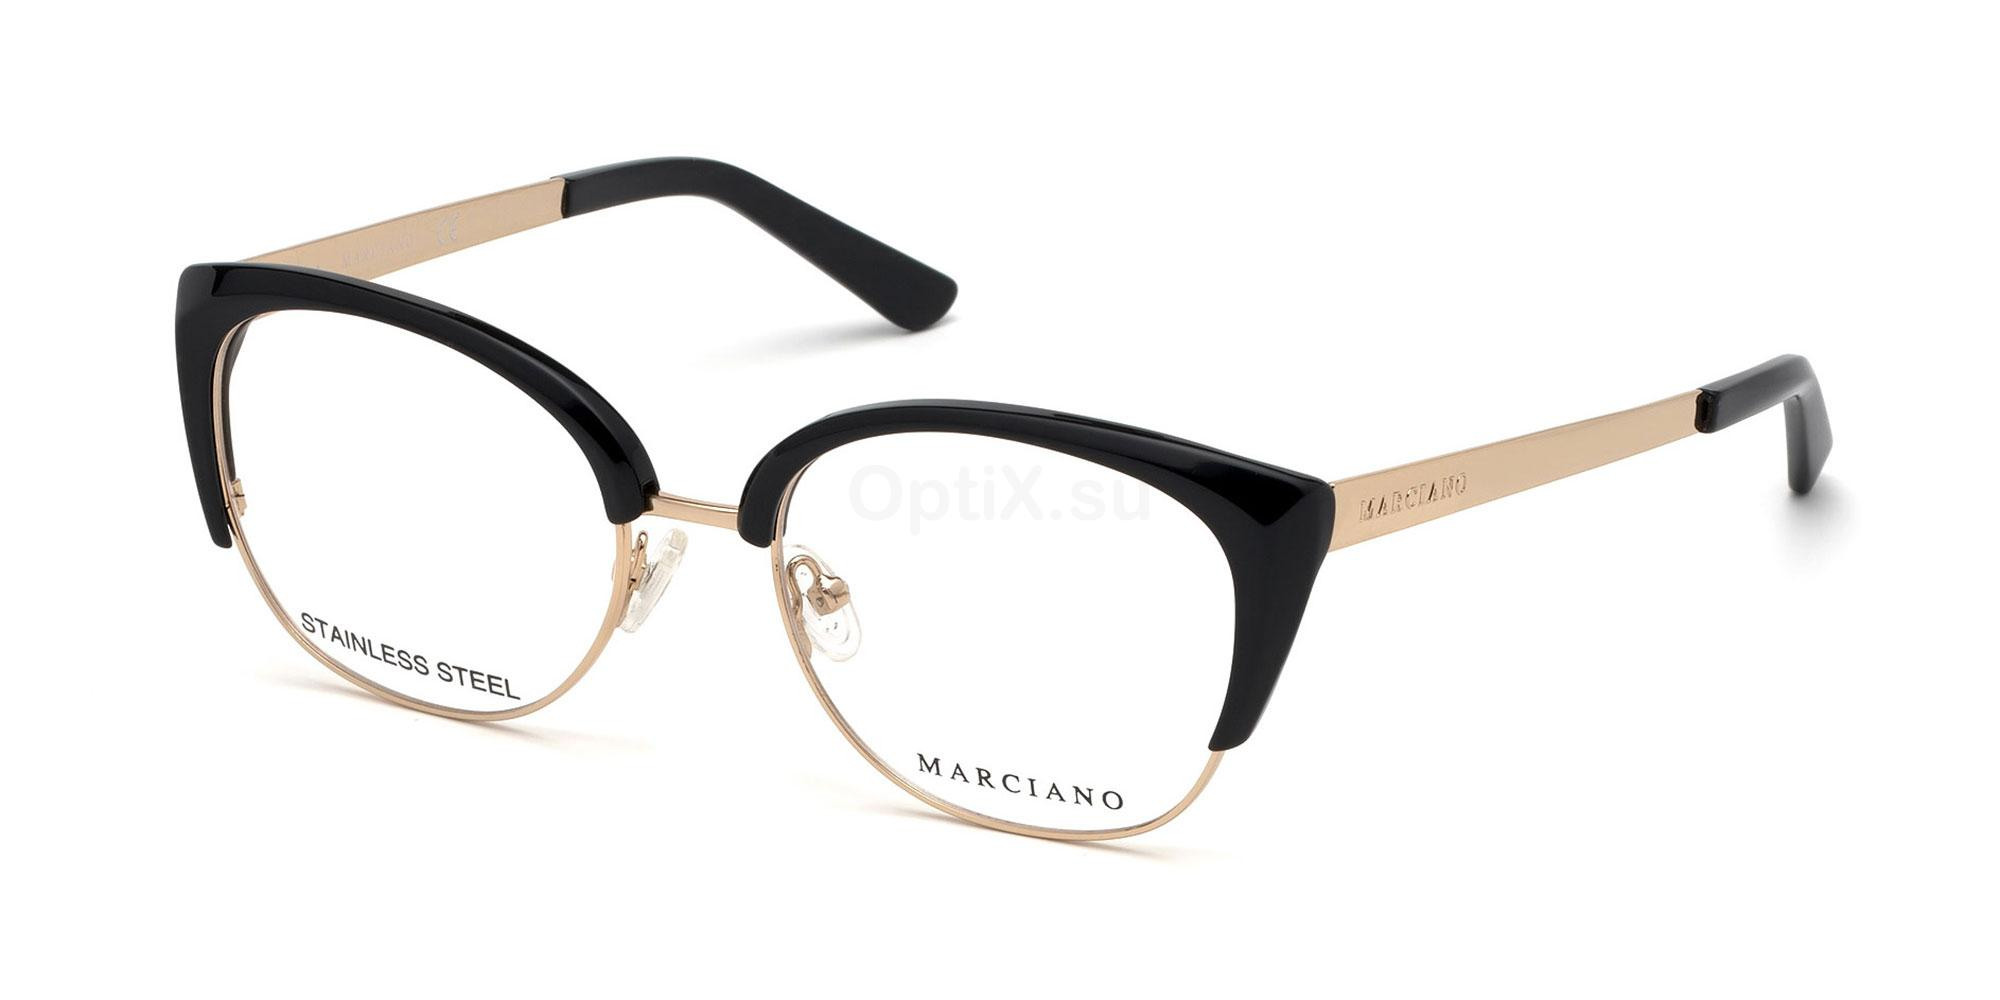 001 GM0334 Glasses, Guess by Marciano